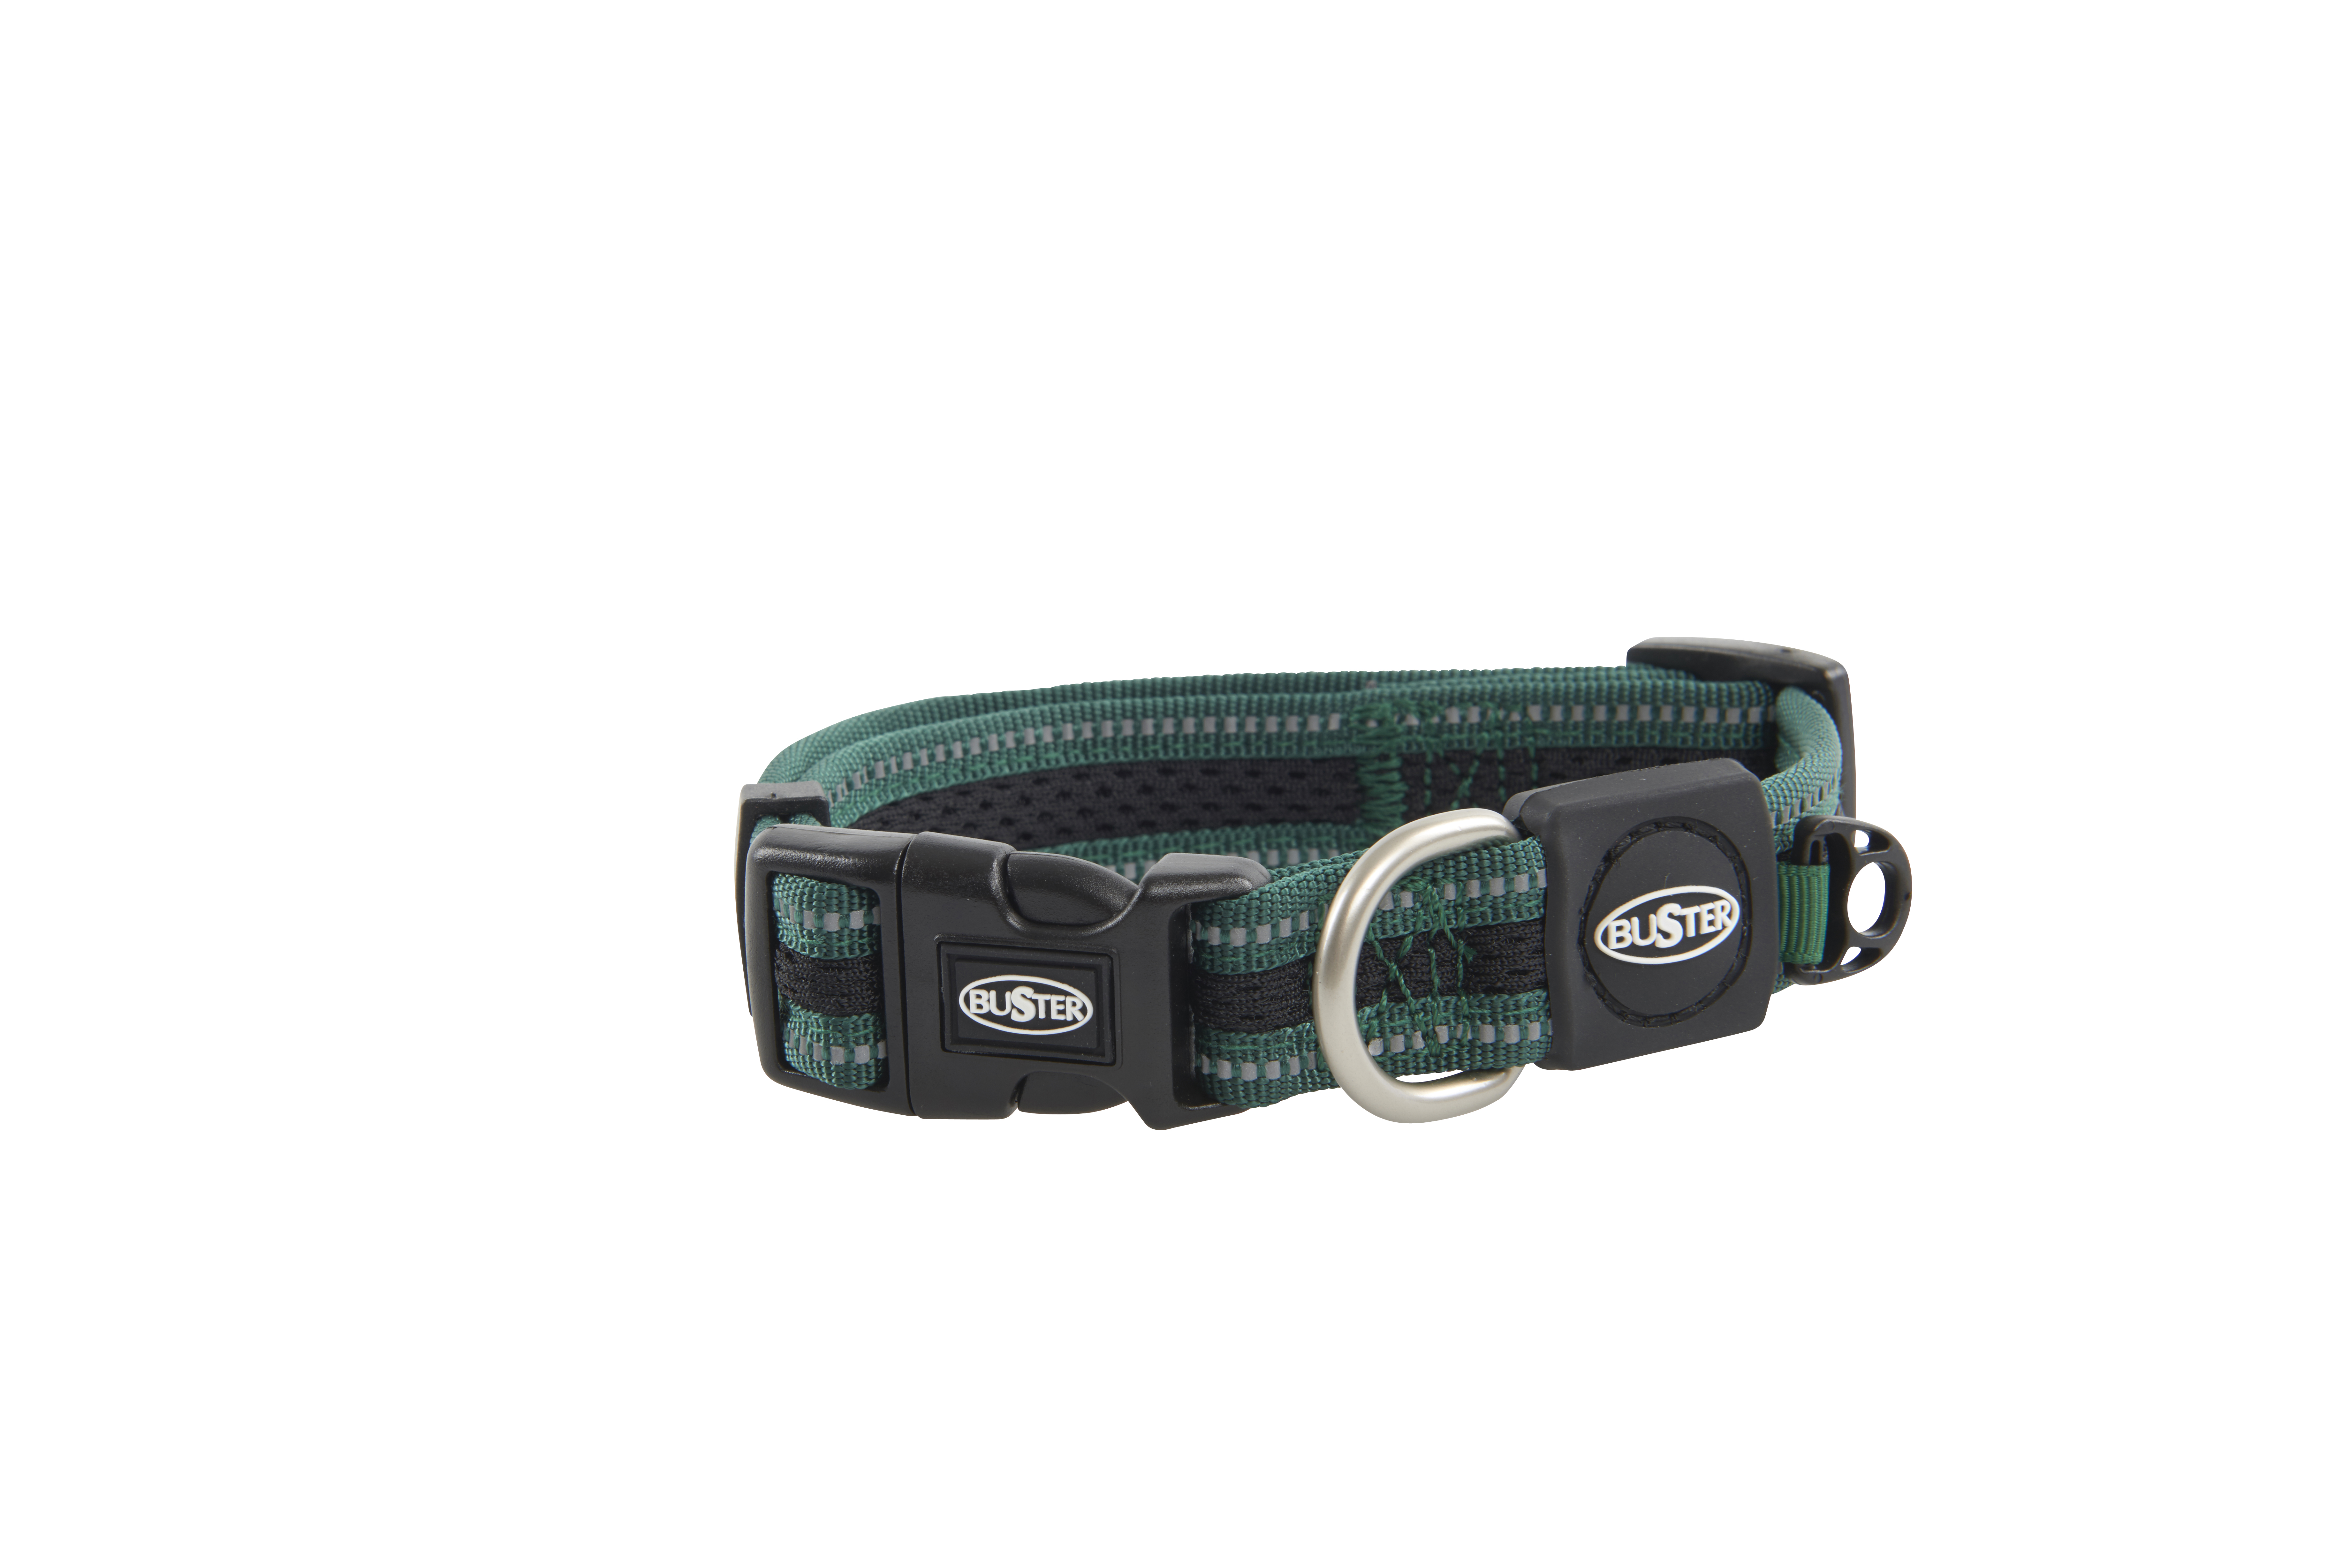 BUSTER Reflective Mesh Collar, Green/Green, S, 20mm (27-40cm)